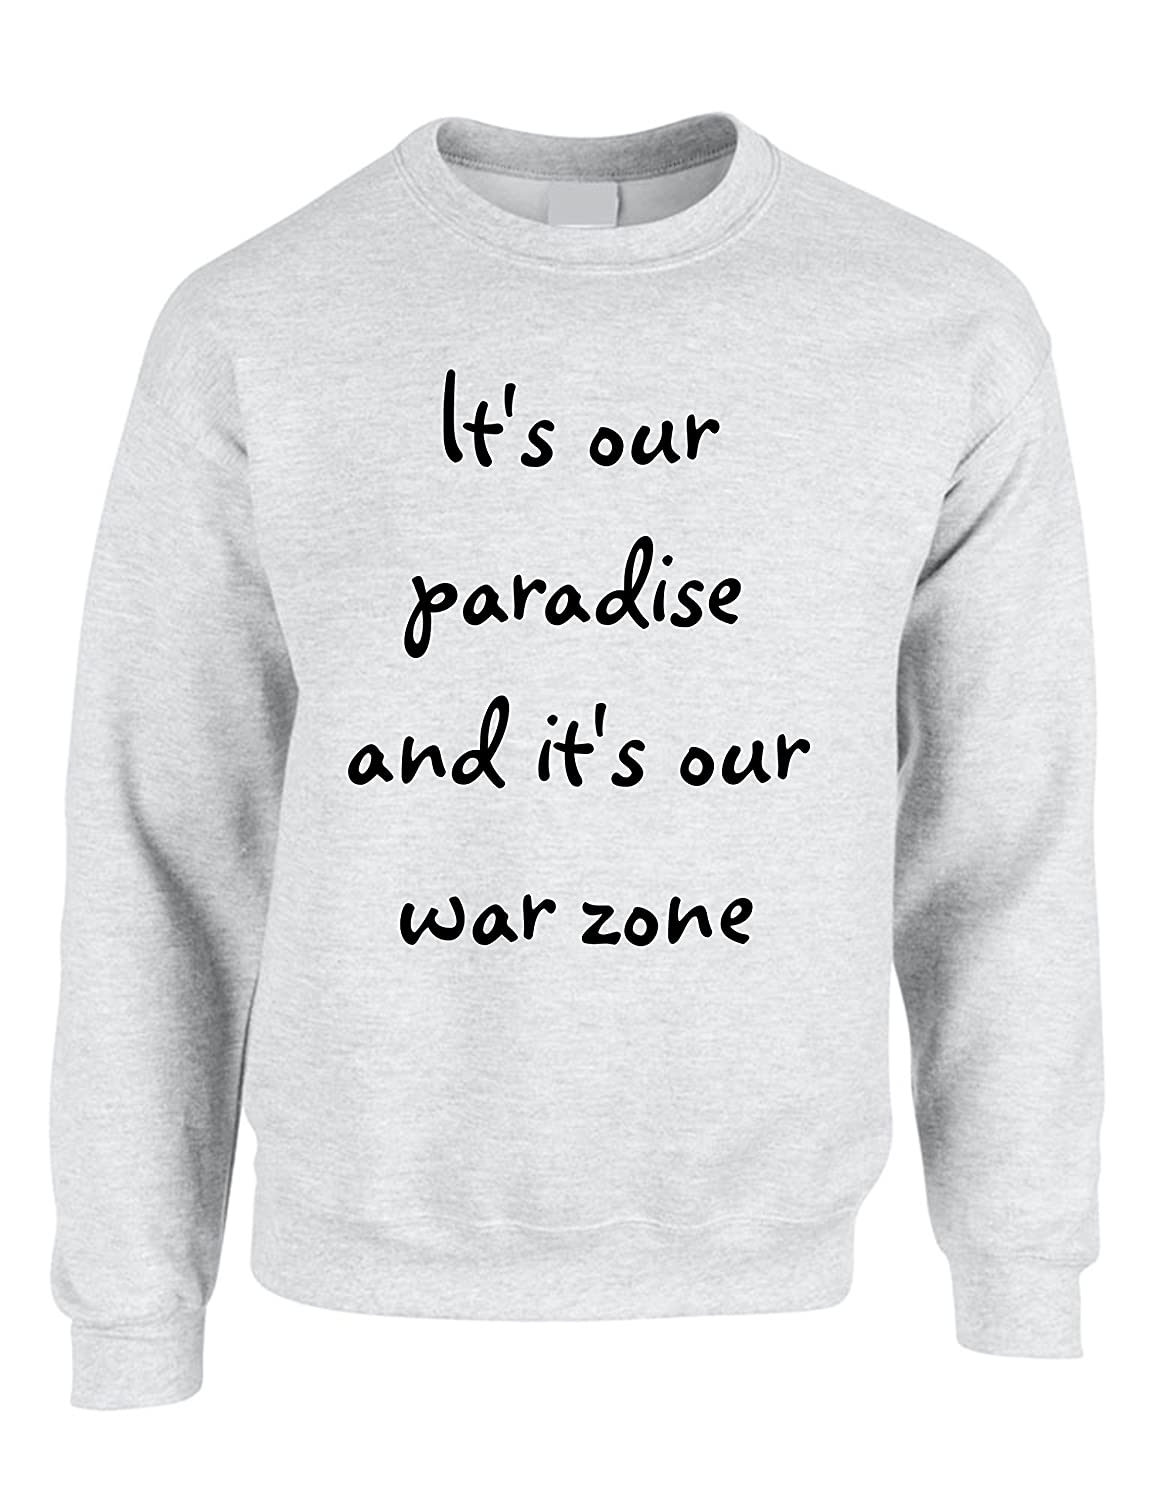 Allntrends Adult Crewneck Its Our Paradise Its Our War Zone Zayn Malik Song